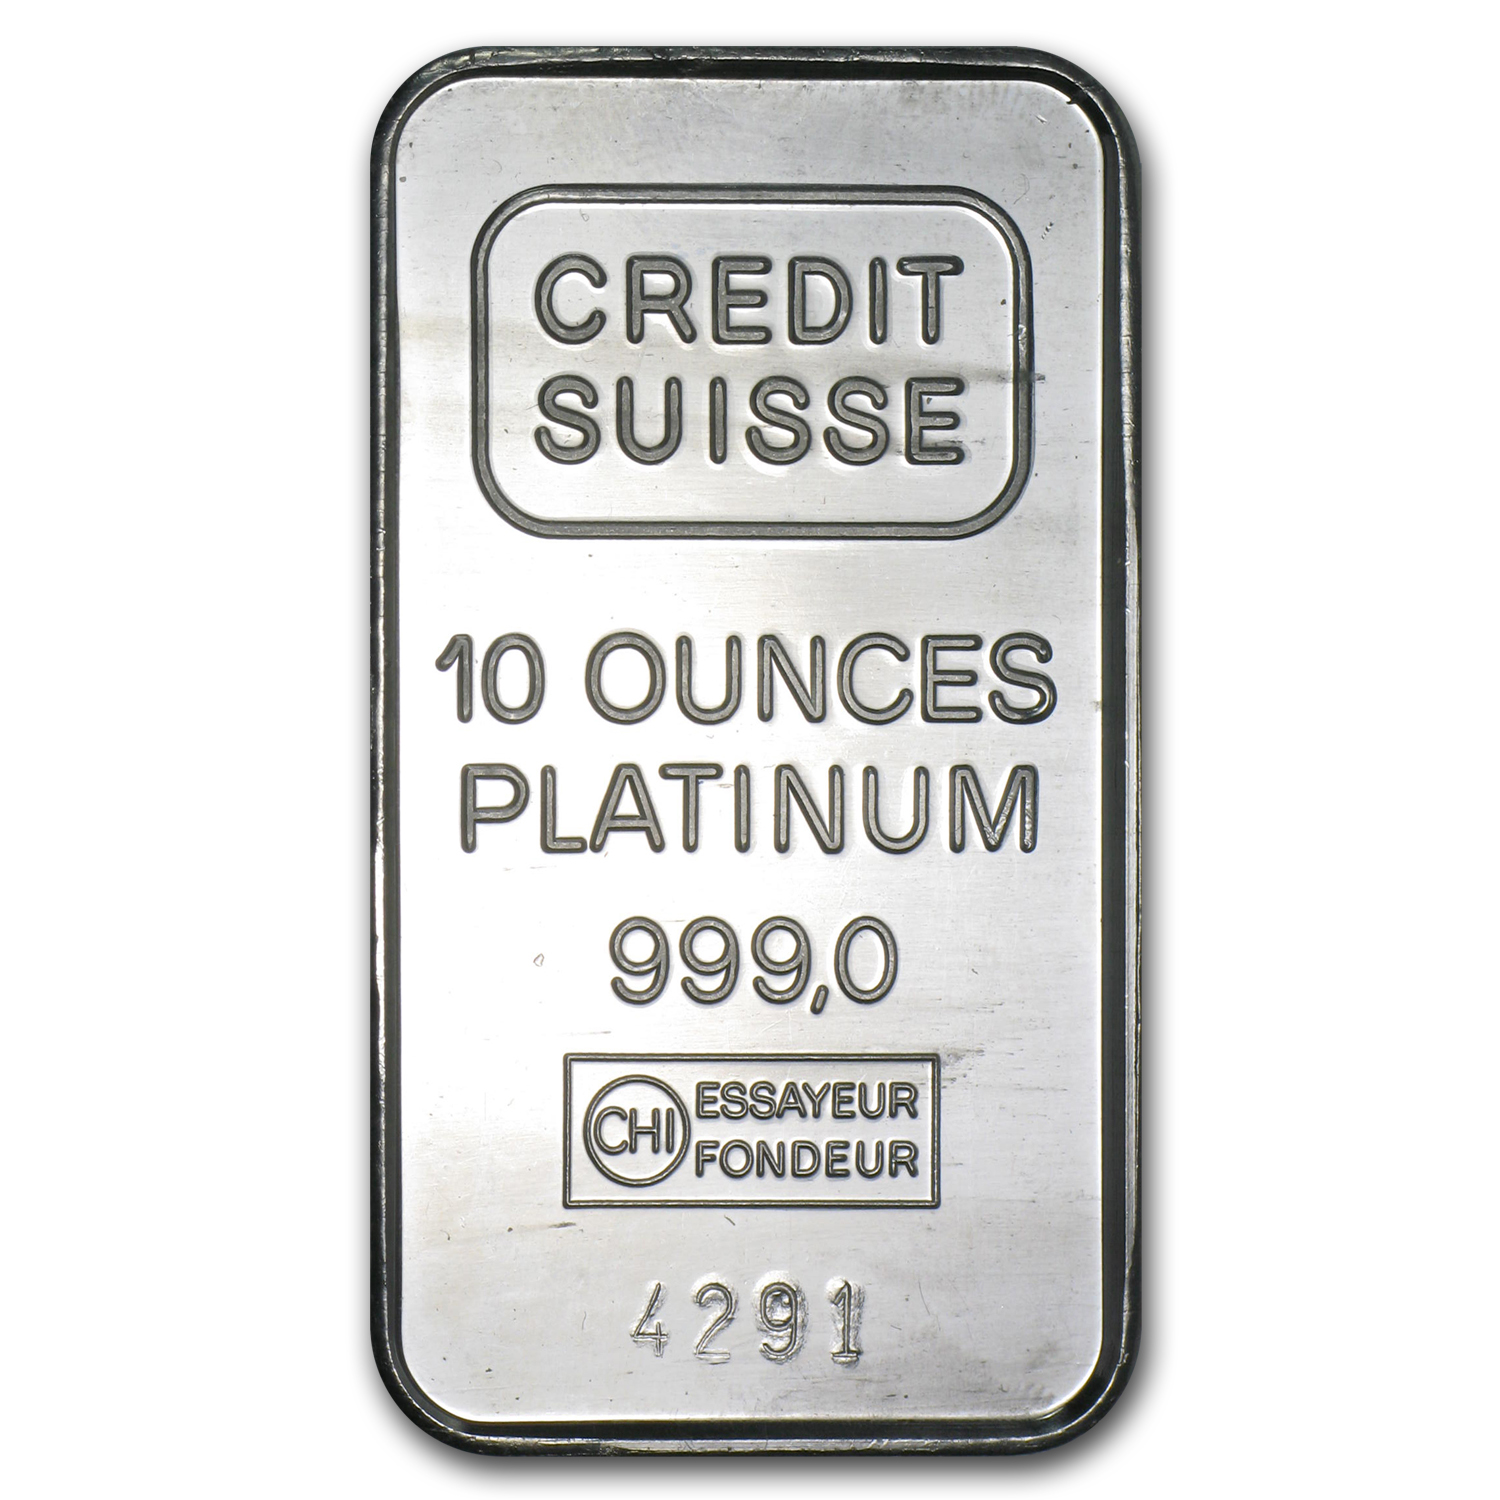 10 oz Platinum Bar - Credit Suisse (.999 Fine, Vintage)